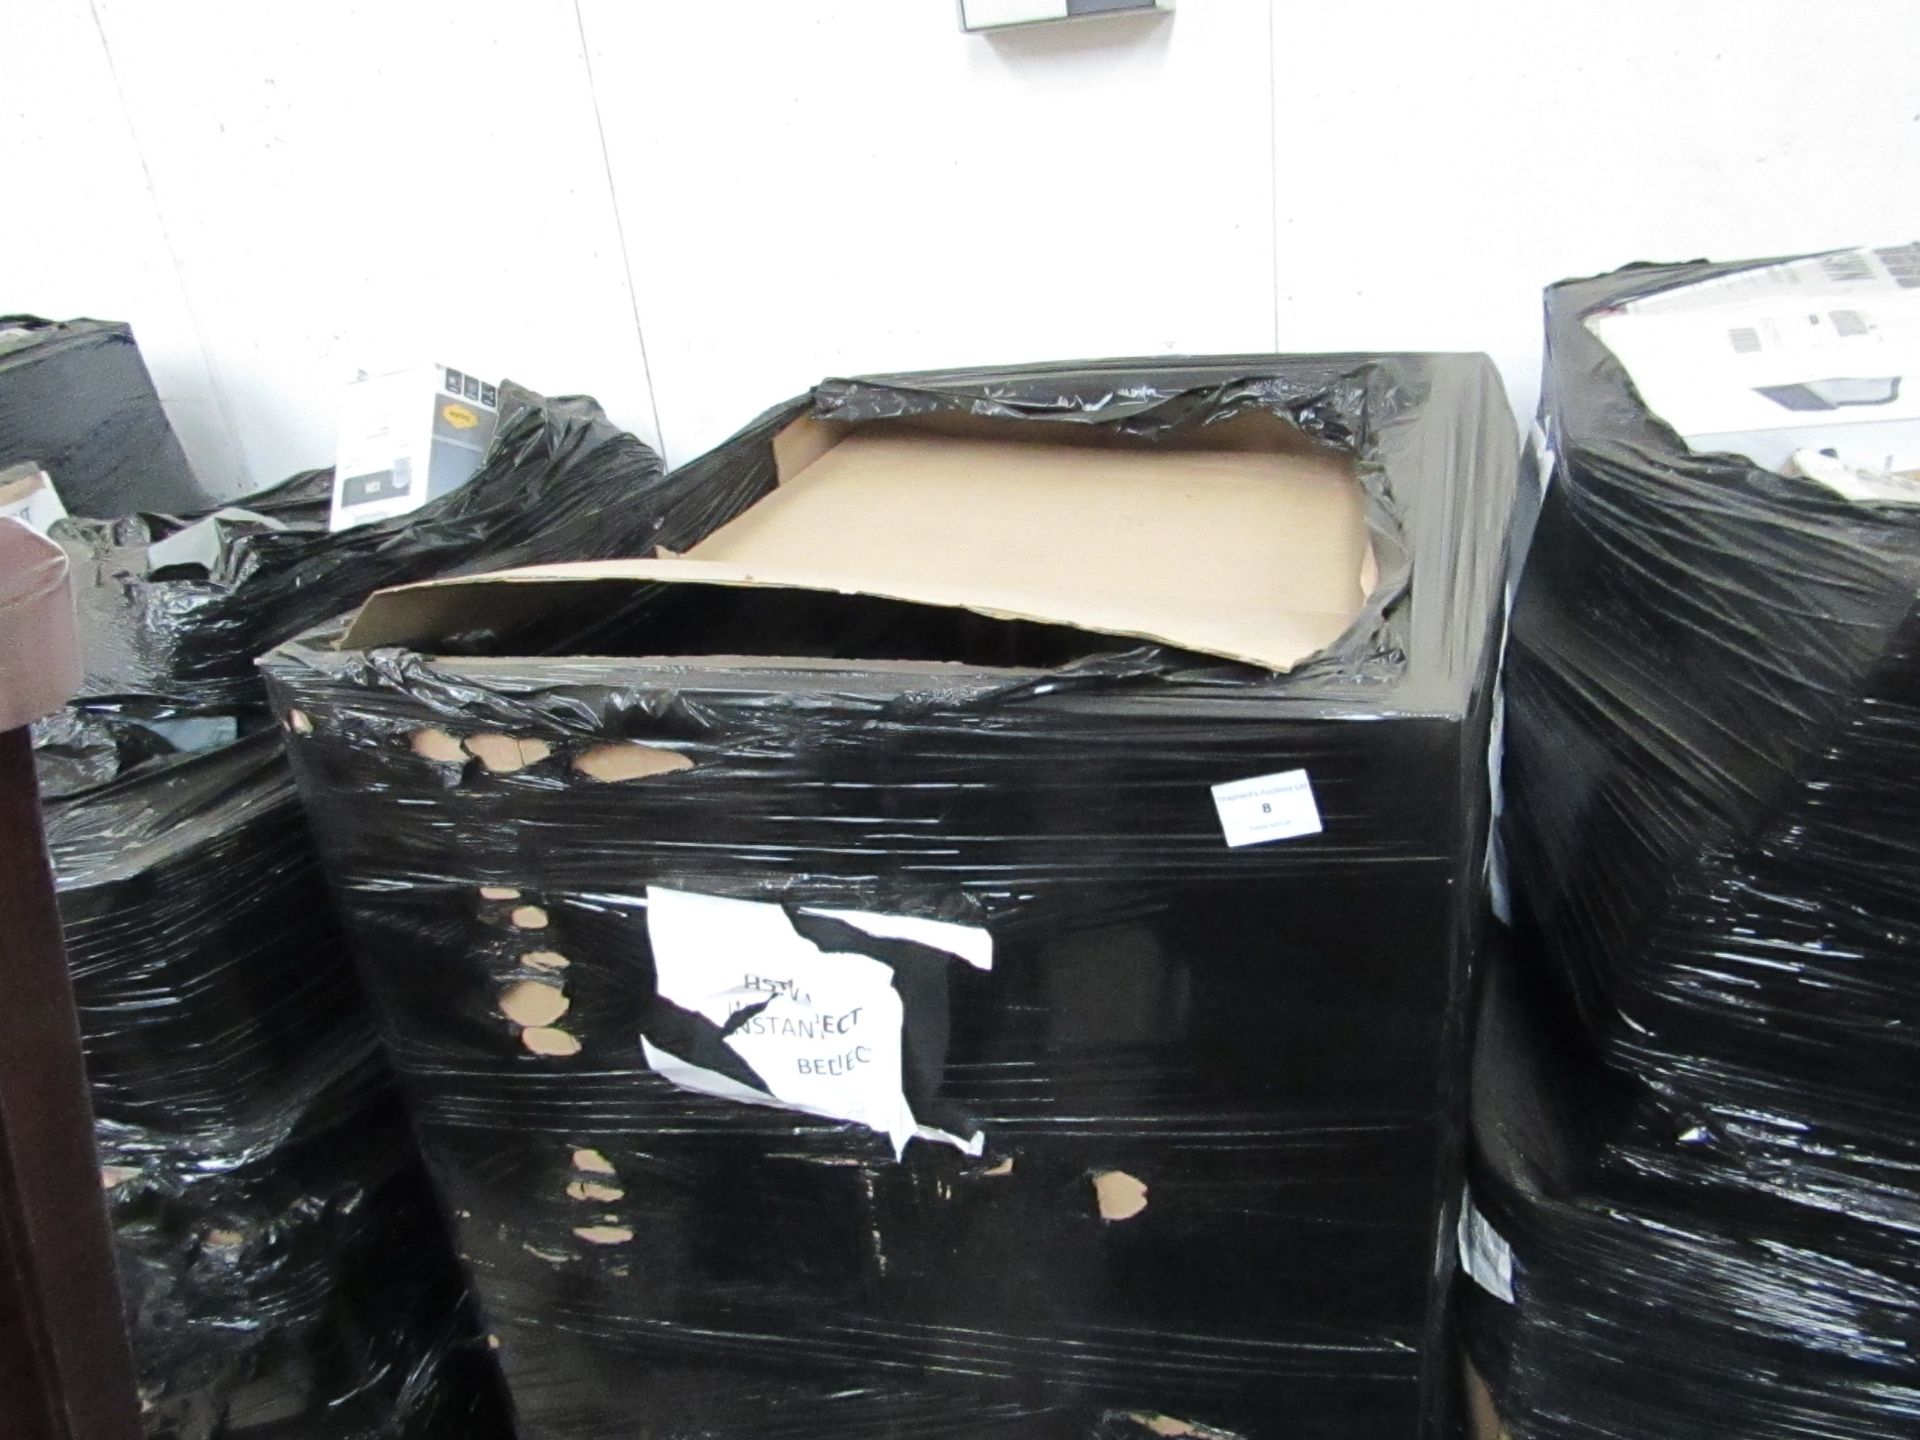   1X   UNMANIFESTED PALLET OF APPROX MIXED YAWN AIR BEDS, TYPICALLY A PALLET CONTAINS BETWEEN 25 AND